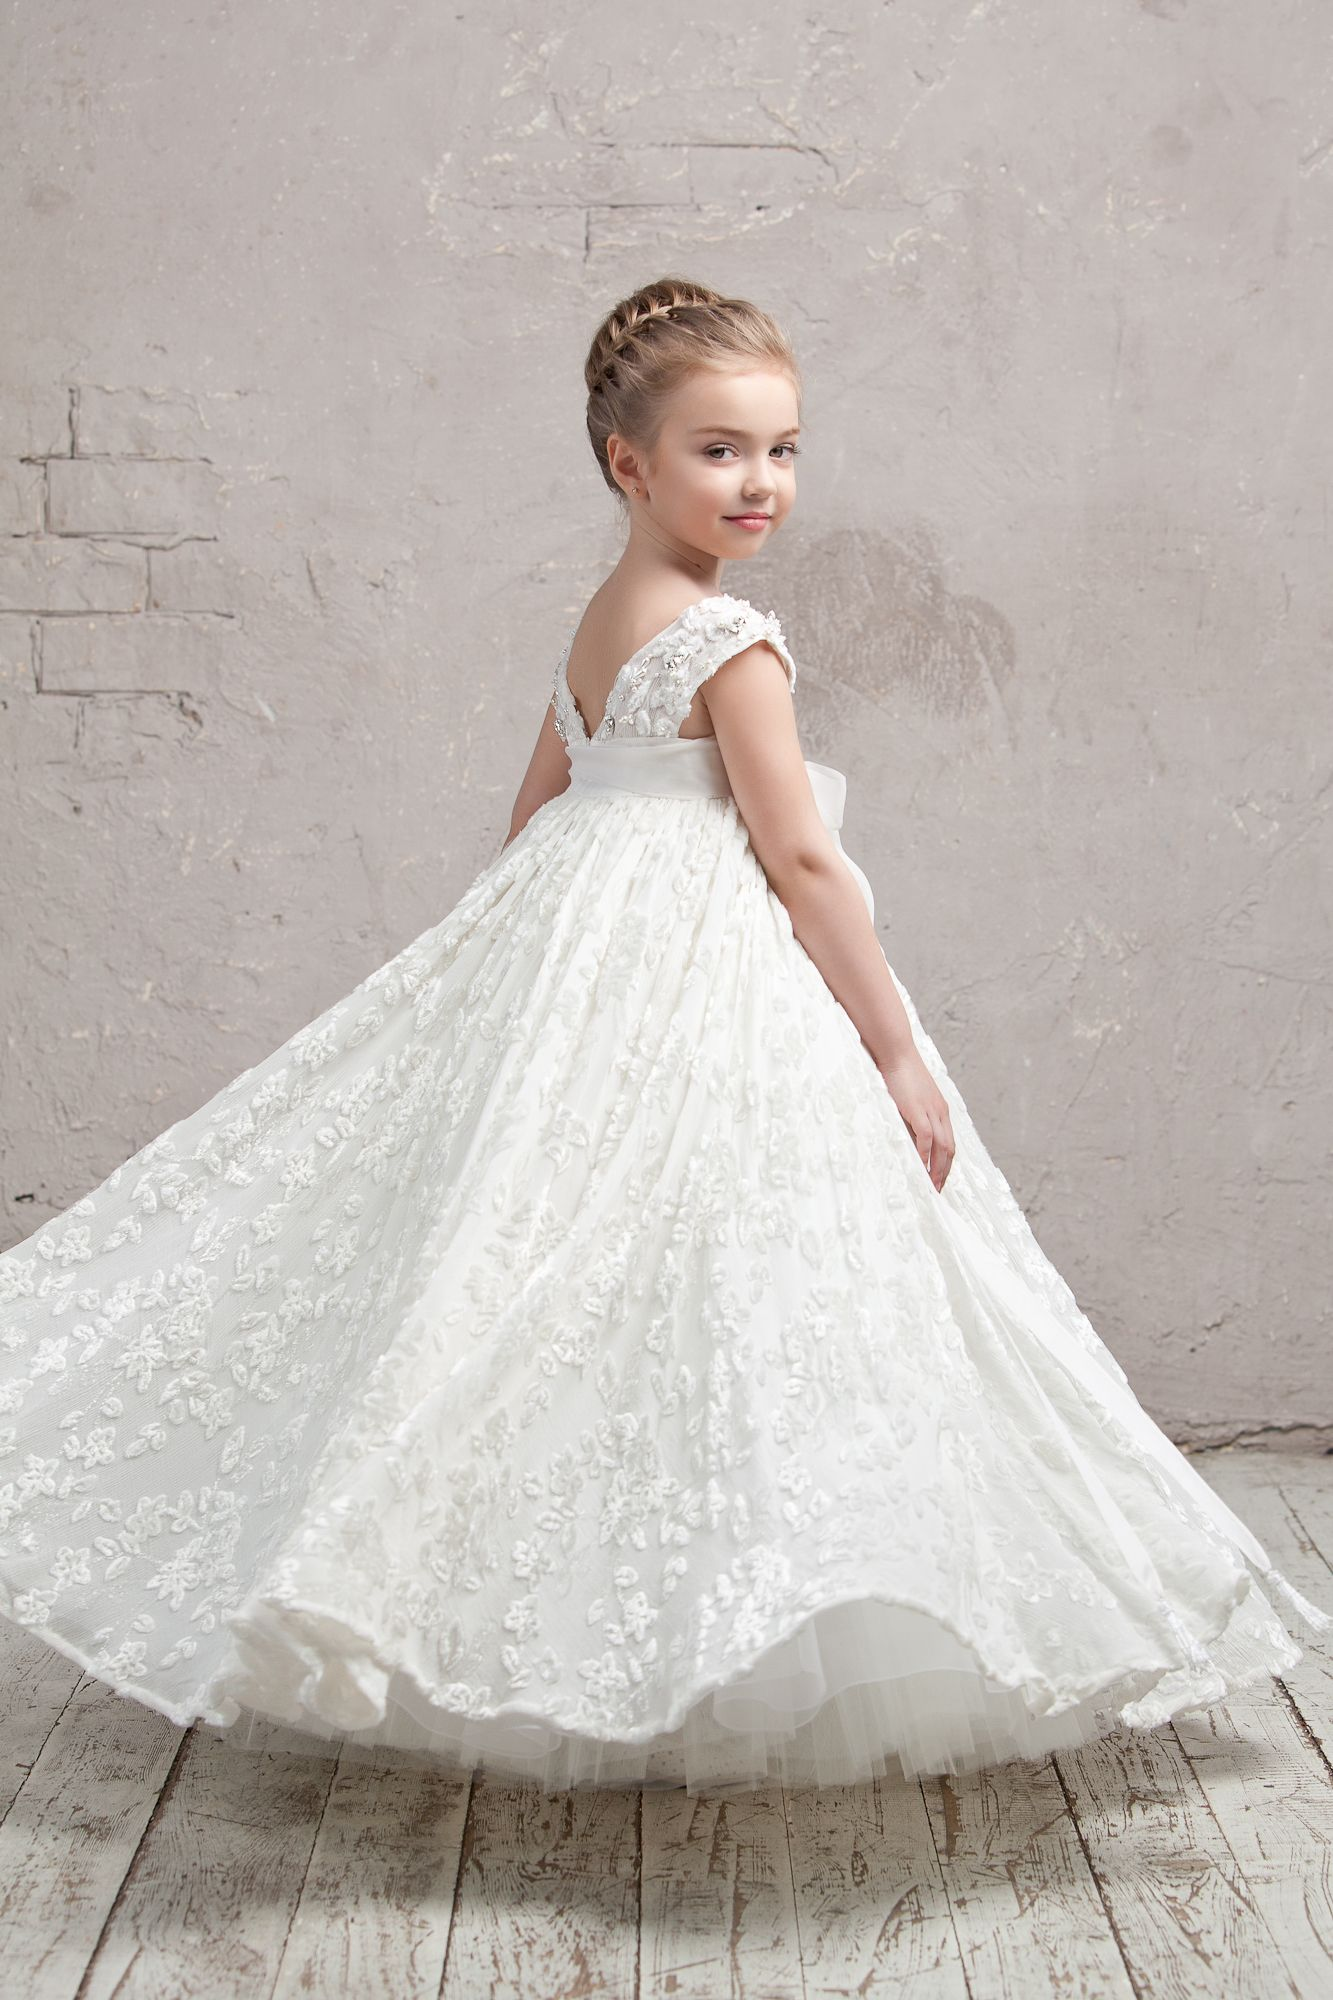 BIBIONA Haute Couture for Kids | BIBIONA COUTURE | Pinterest